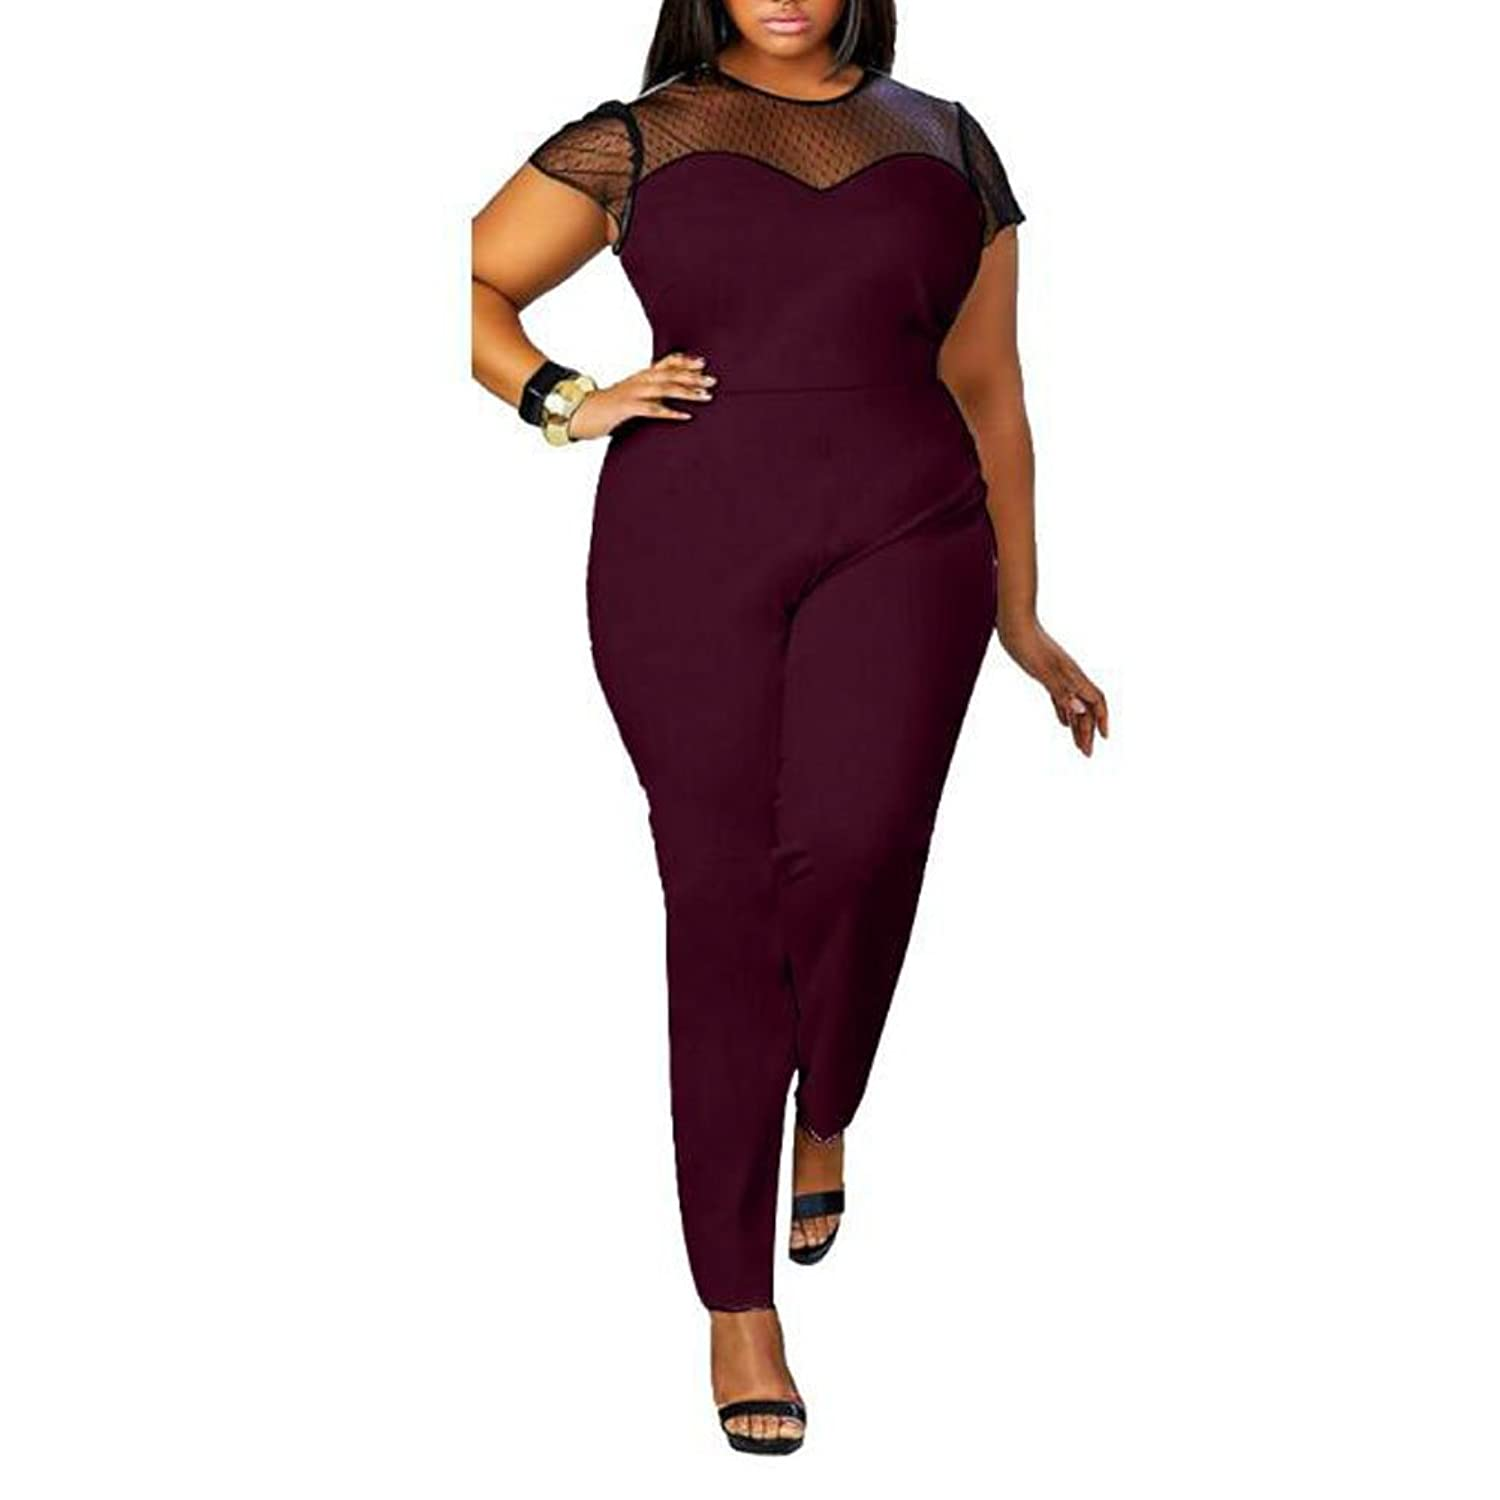 Zugoulook Womens Mesh Stitching See Through Short Sleeve Plus Size Long Pants Jumpsuits Rompers